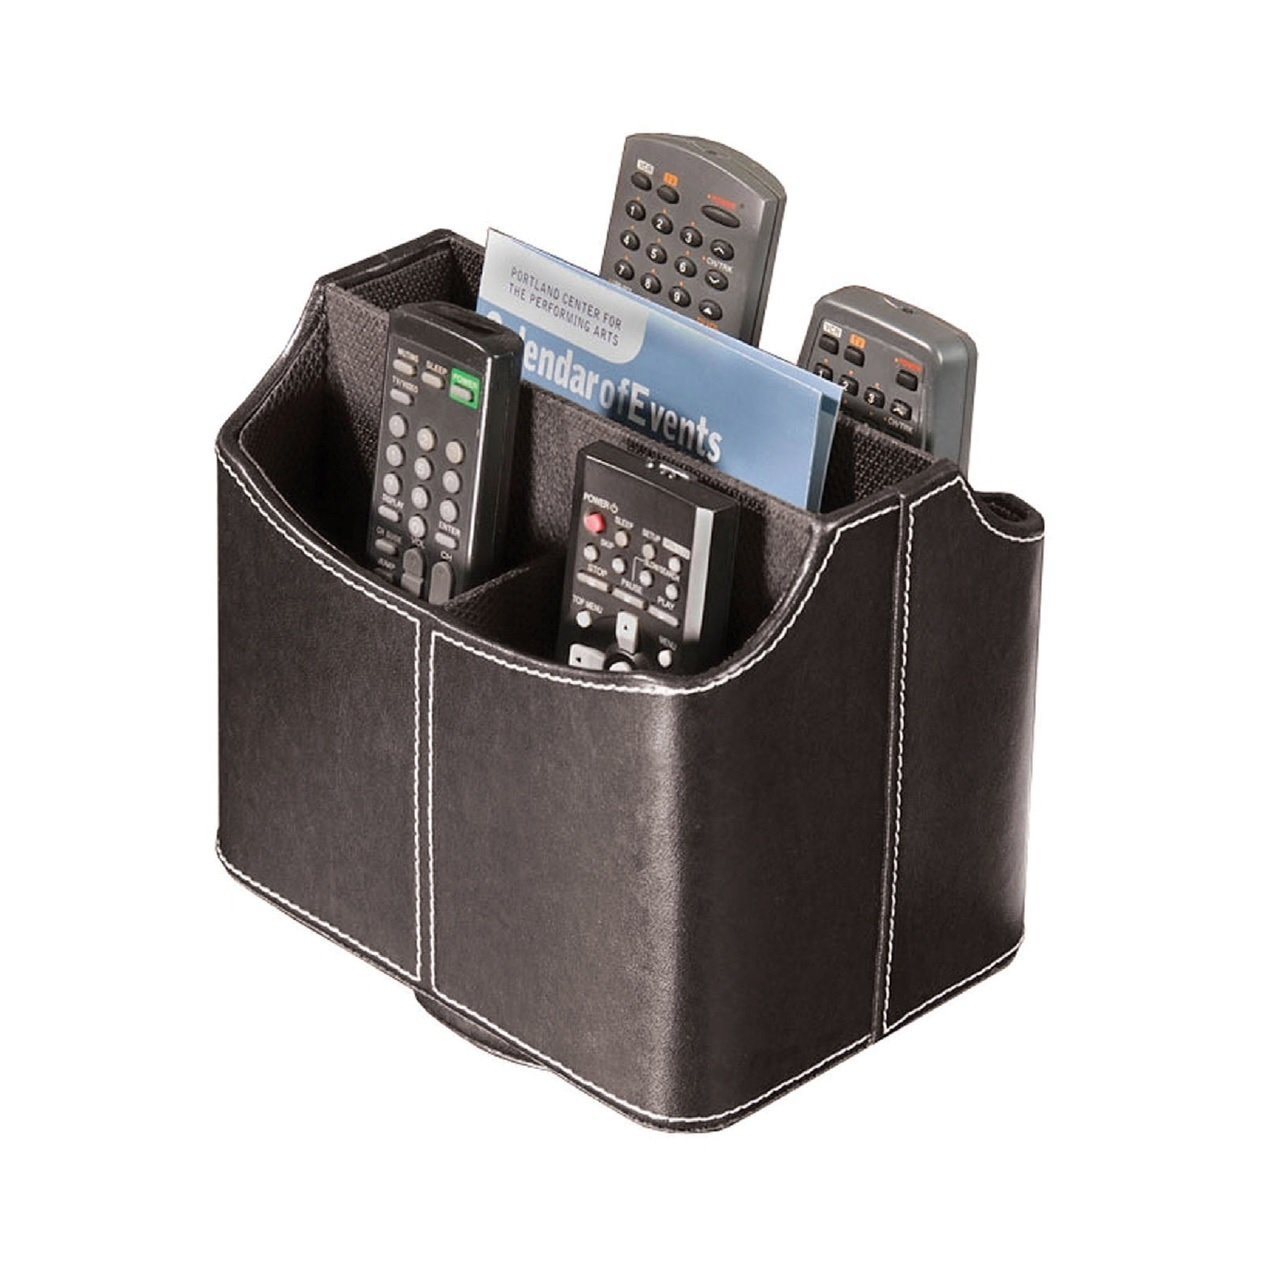 spinning media storage faux leather remote control organizer holder caddy stitch ebay. Black Bedroom Furniture Sets. Home Design Ideas